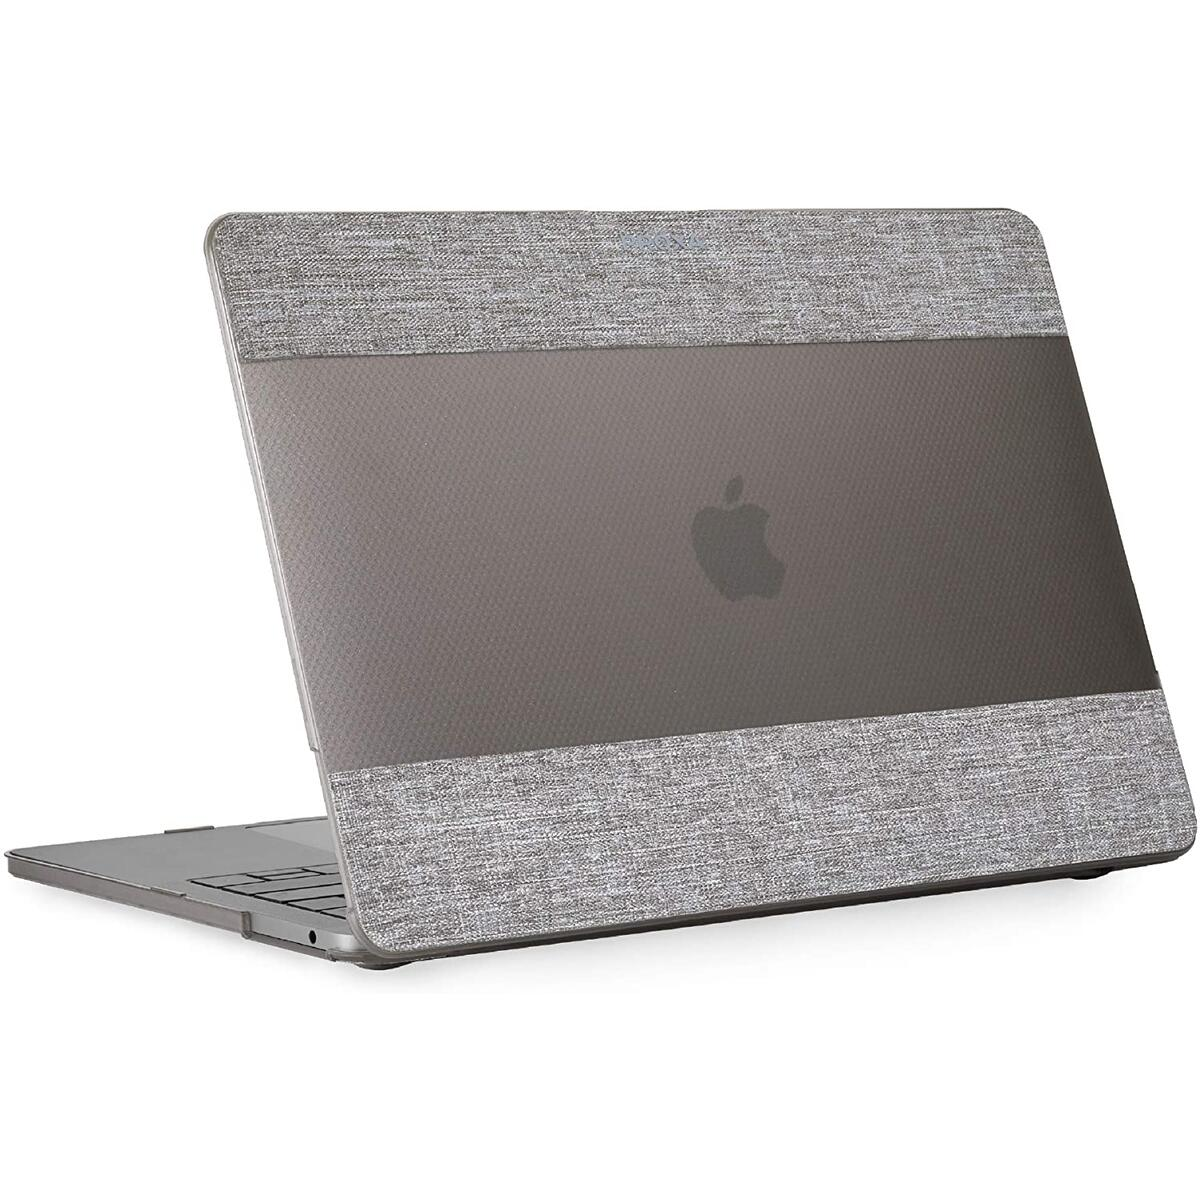 PROXA MacBook Pro 13 inch Case Released 2018 & 2019, Creator Series Hardshell Case Cover for MacBook Pro 13 inch 2018/2019, A1706/A1708/A1989/A2159-Space Grey